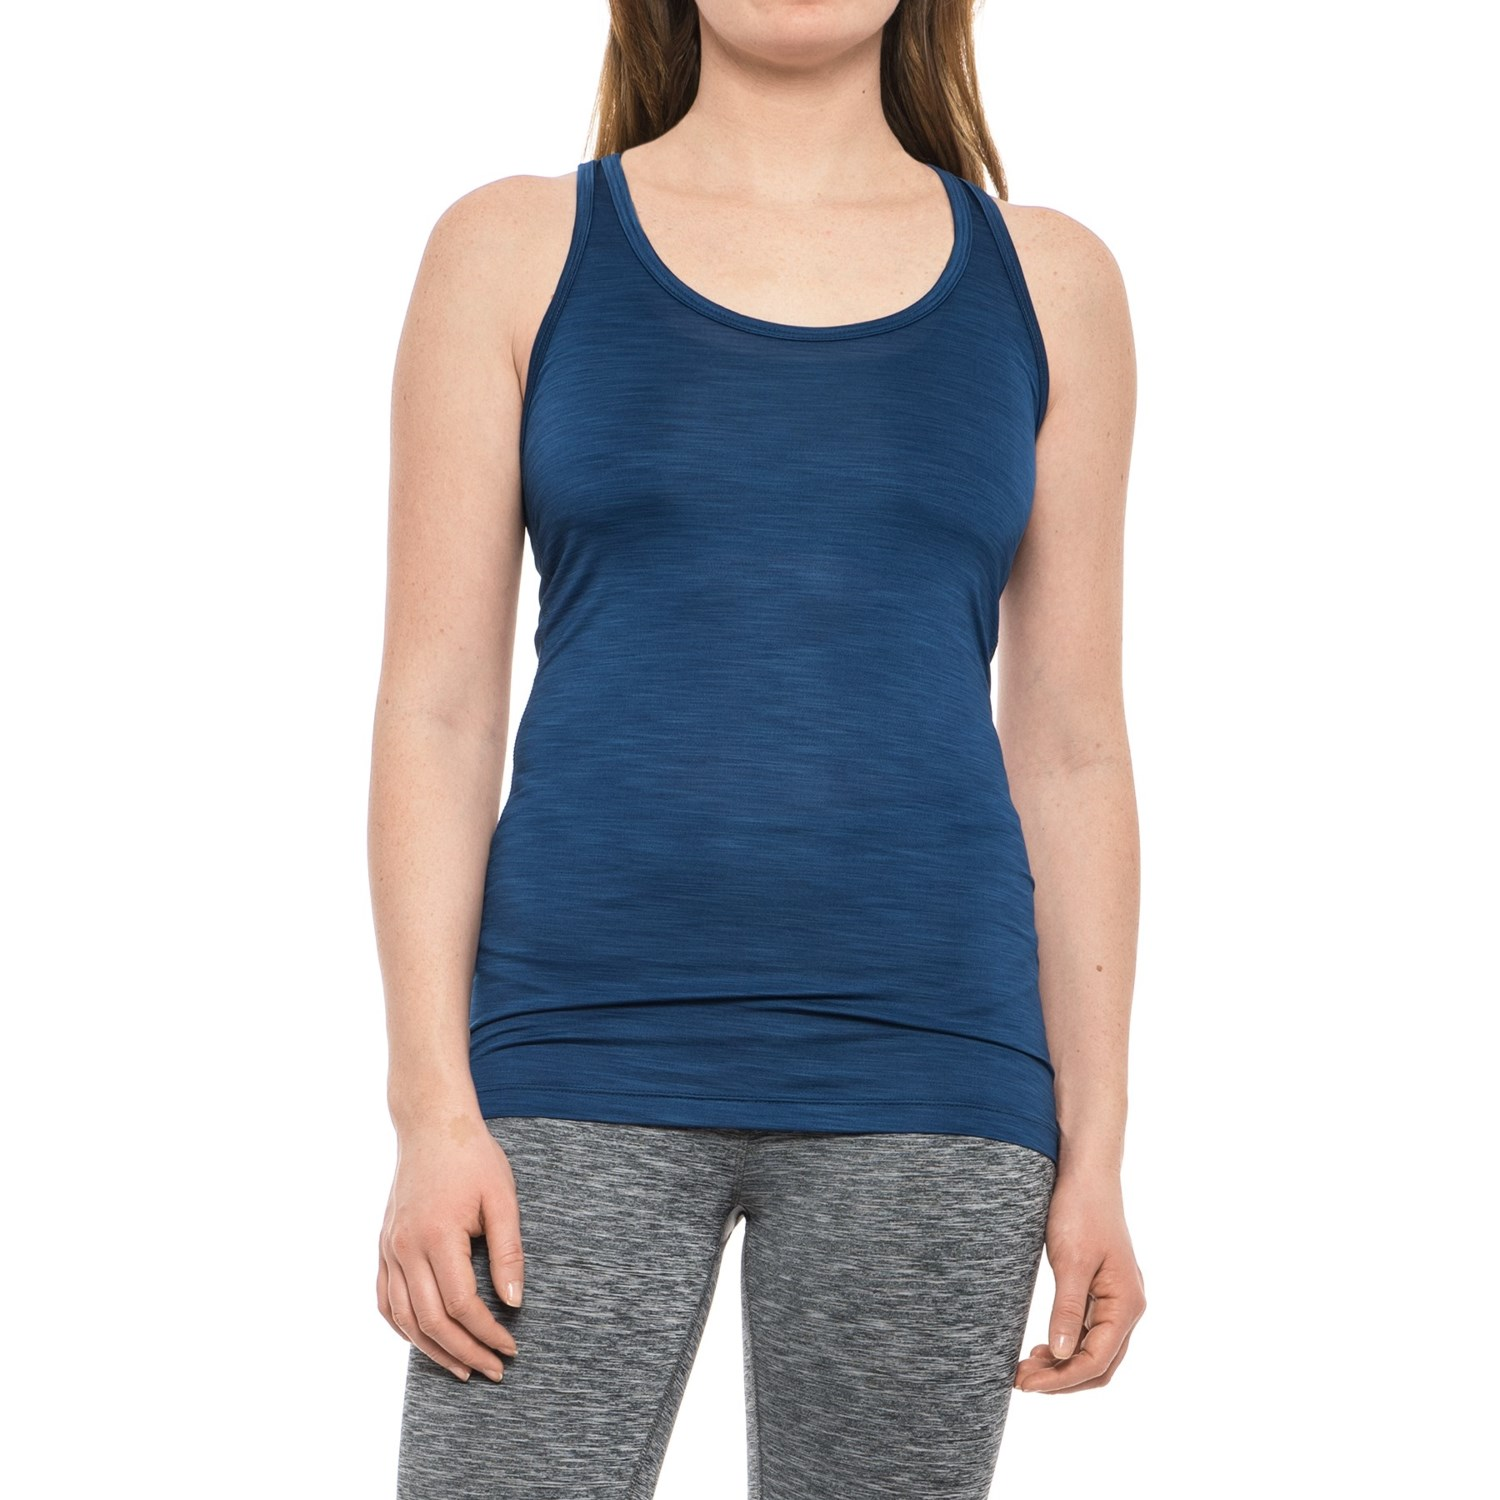 90 Degree by Reflex Allover Racerback Tank Top (For Women)